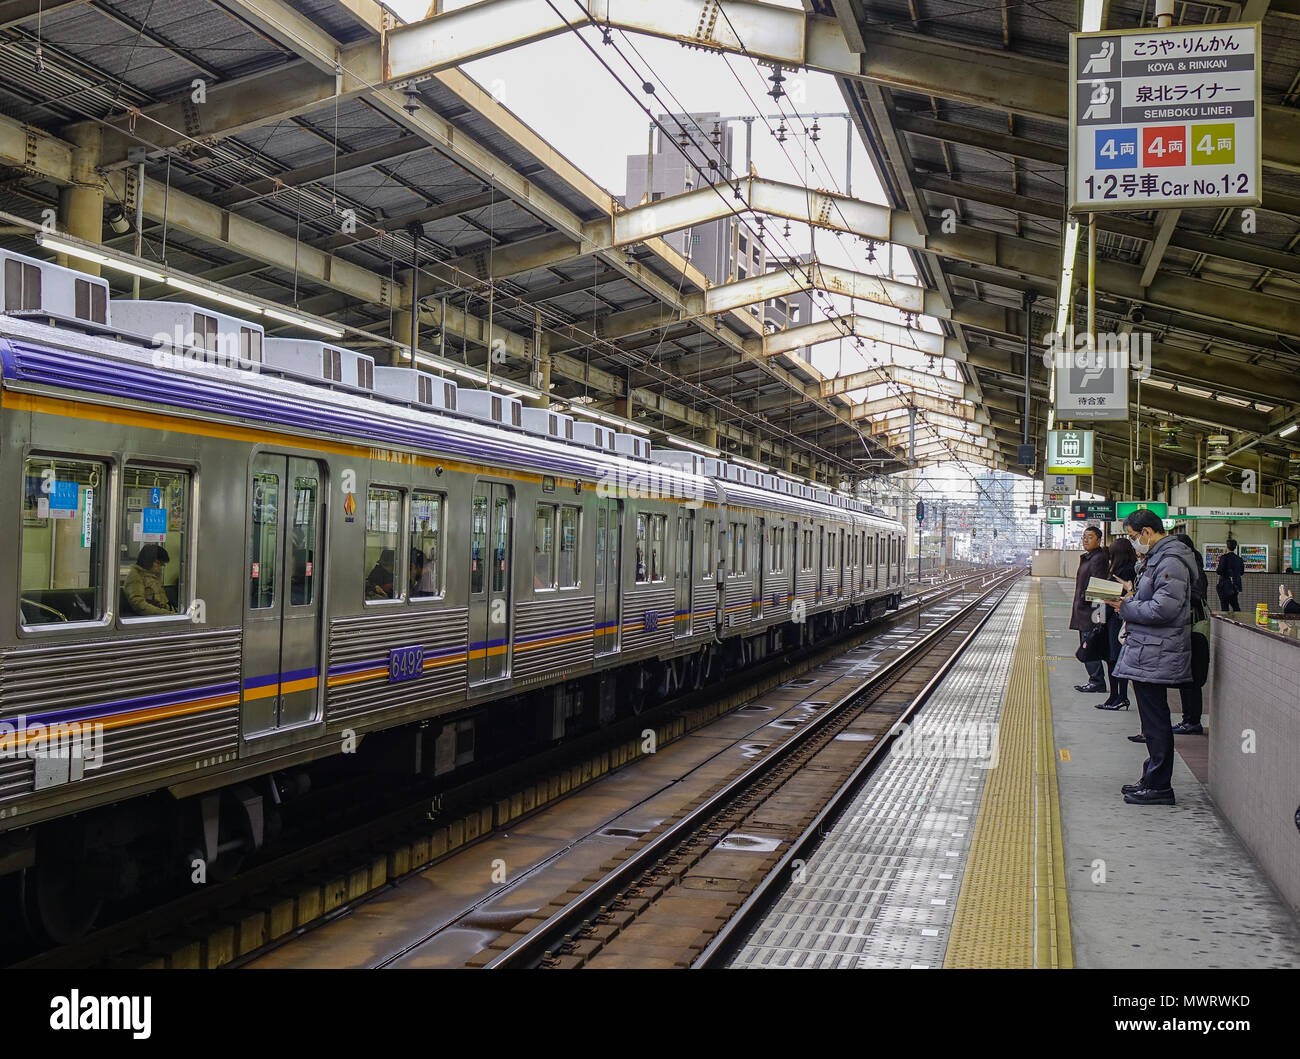 Osaka, Japan - Nov 24, 2016. A train stopping at a JR Railway Station. The railway system in Japan has a high reputation for punctuality and safety. - Stock Image